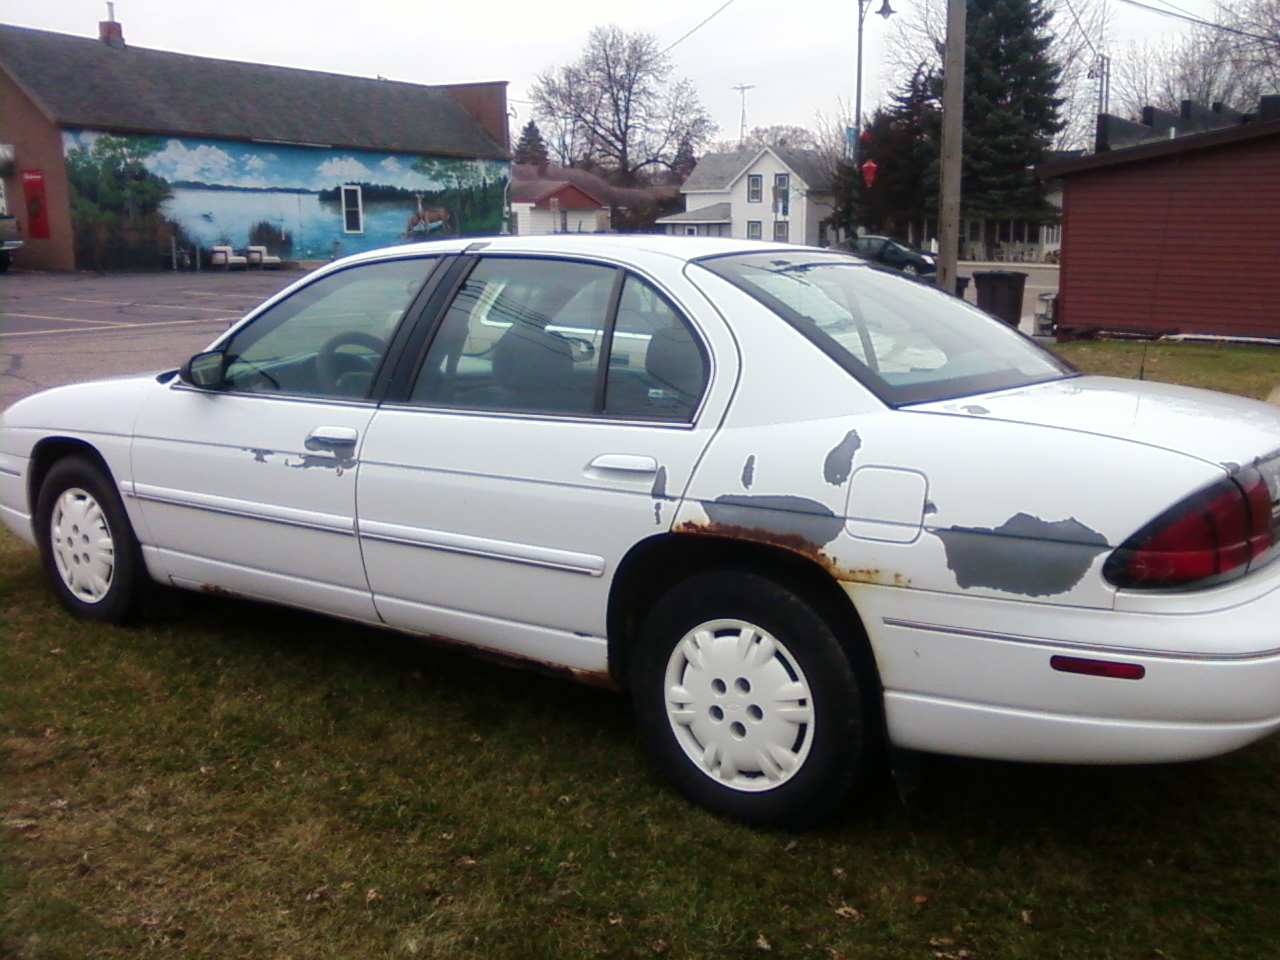 1995 Chevrolet Lumina picture